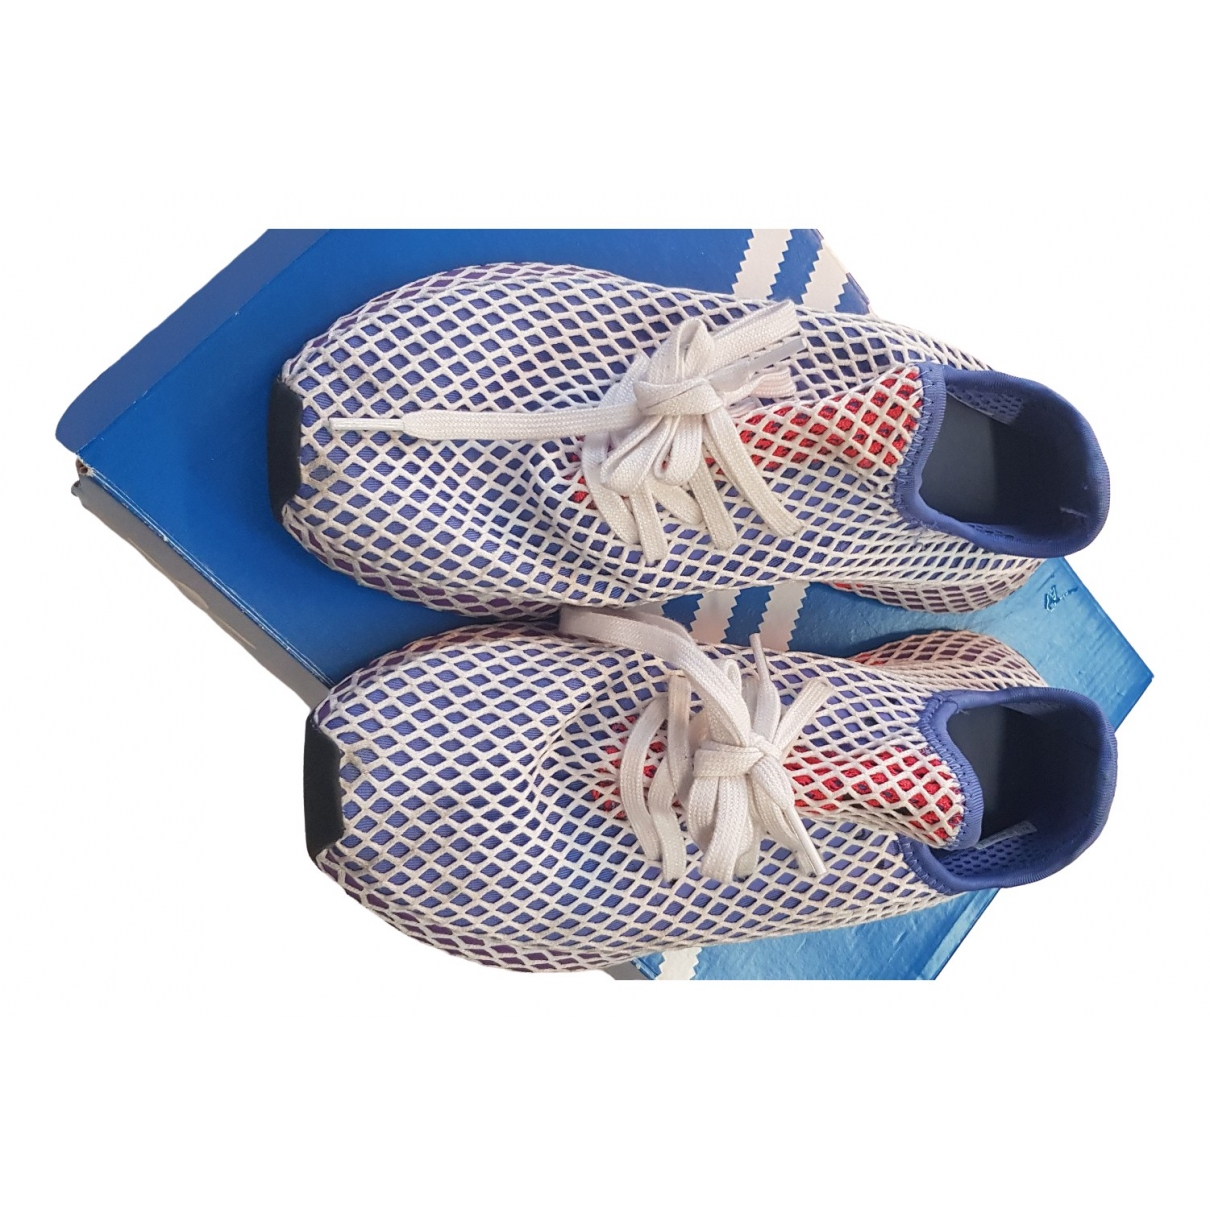 Adidas Deerupt Runner Blue Rubber Trainers for Women 8.5 US